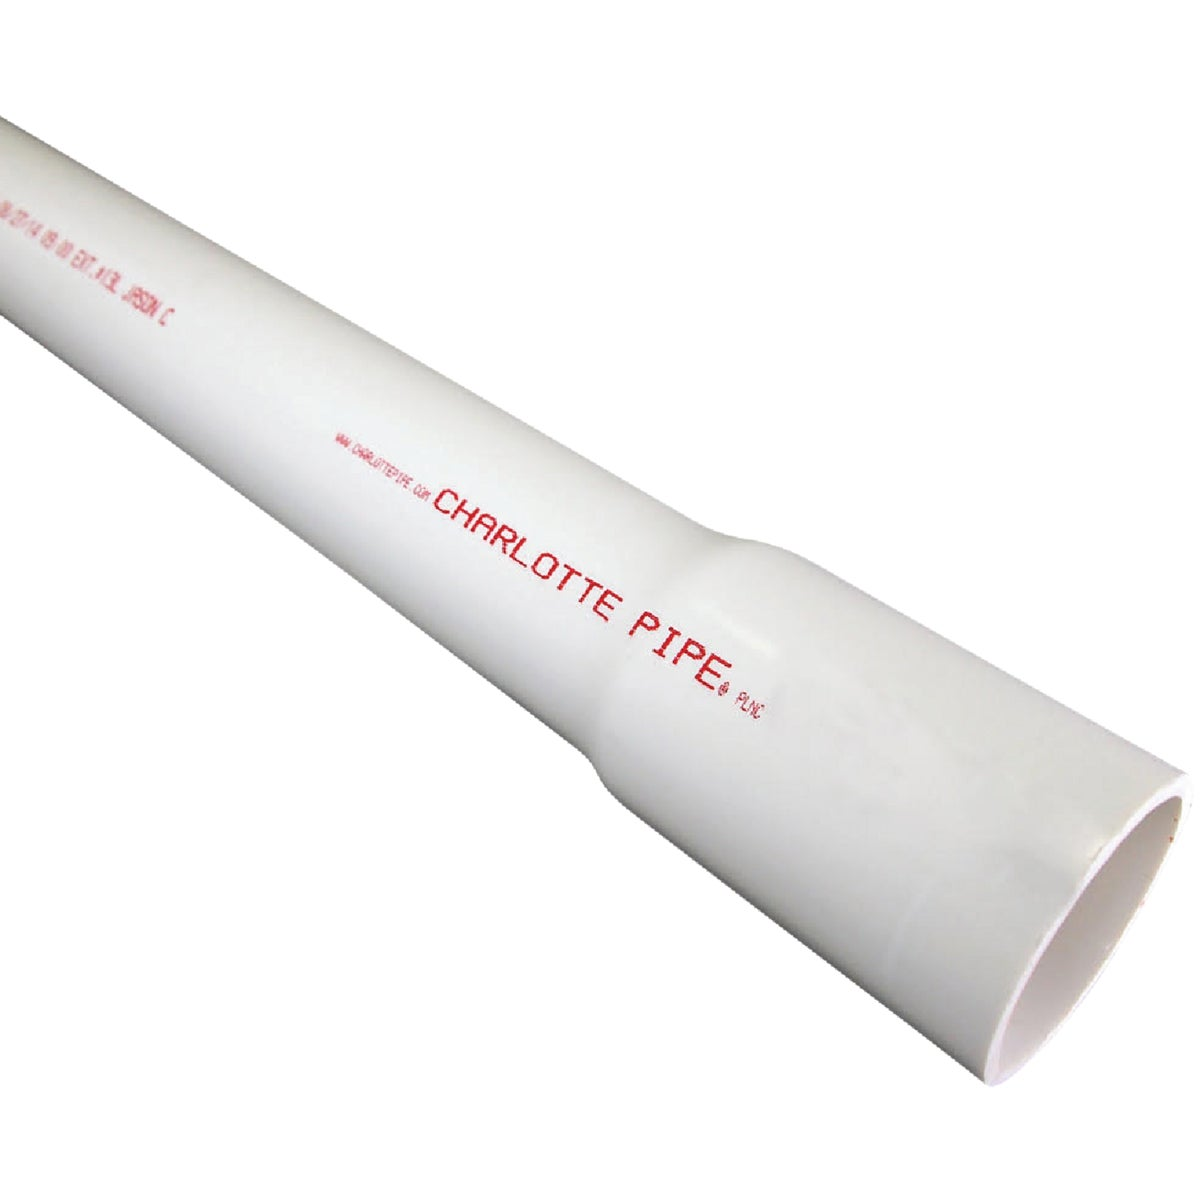 "1""X20' SCH40 PVC PIPE - PVC 04010B 0800HA by Charlotte Pipe"